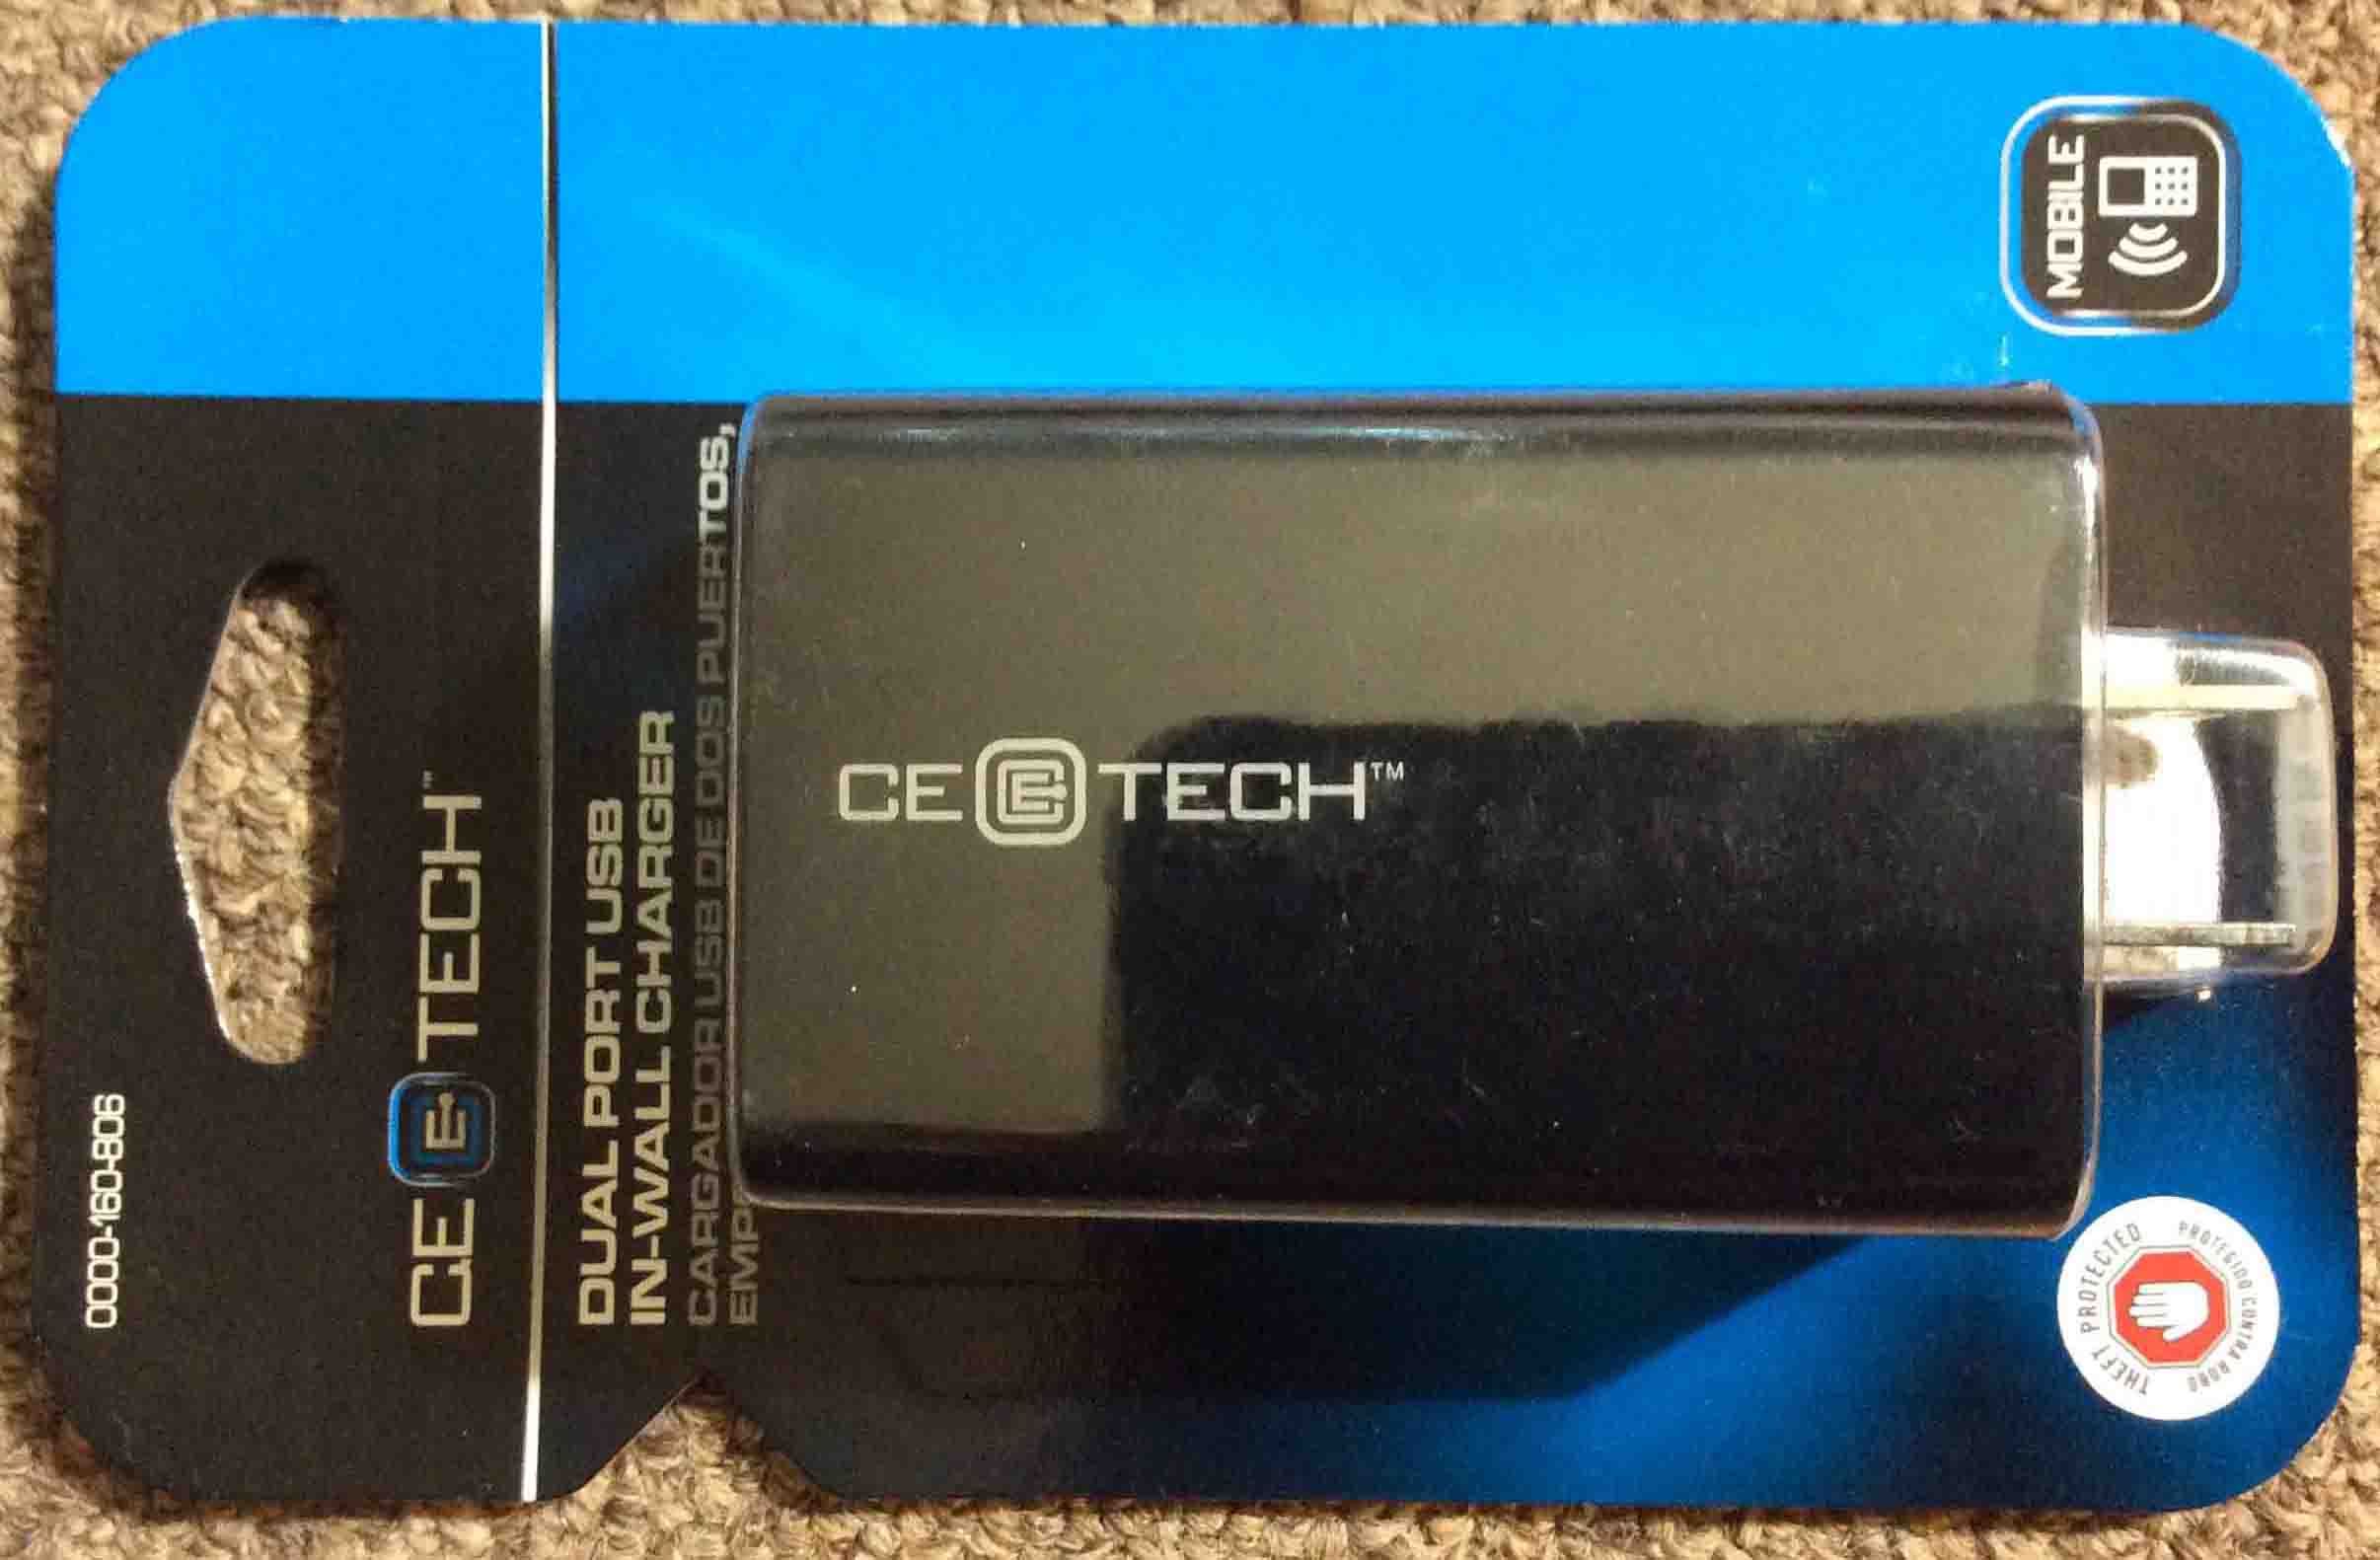 Ce Tech Dual Port In Wall Usb Charger 0000 160 806 Review